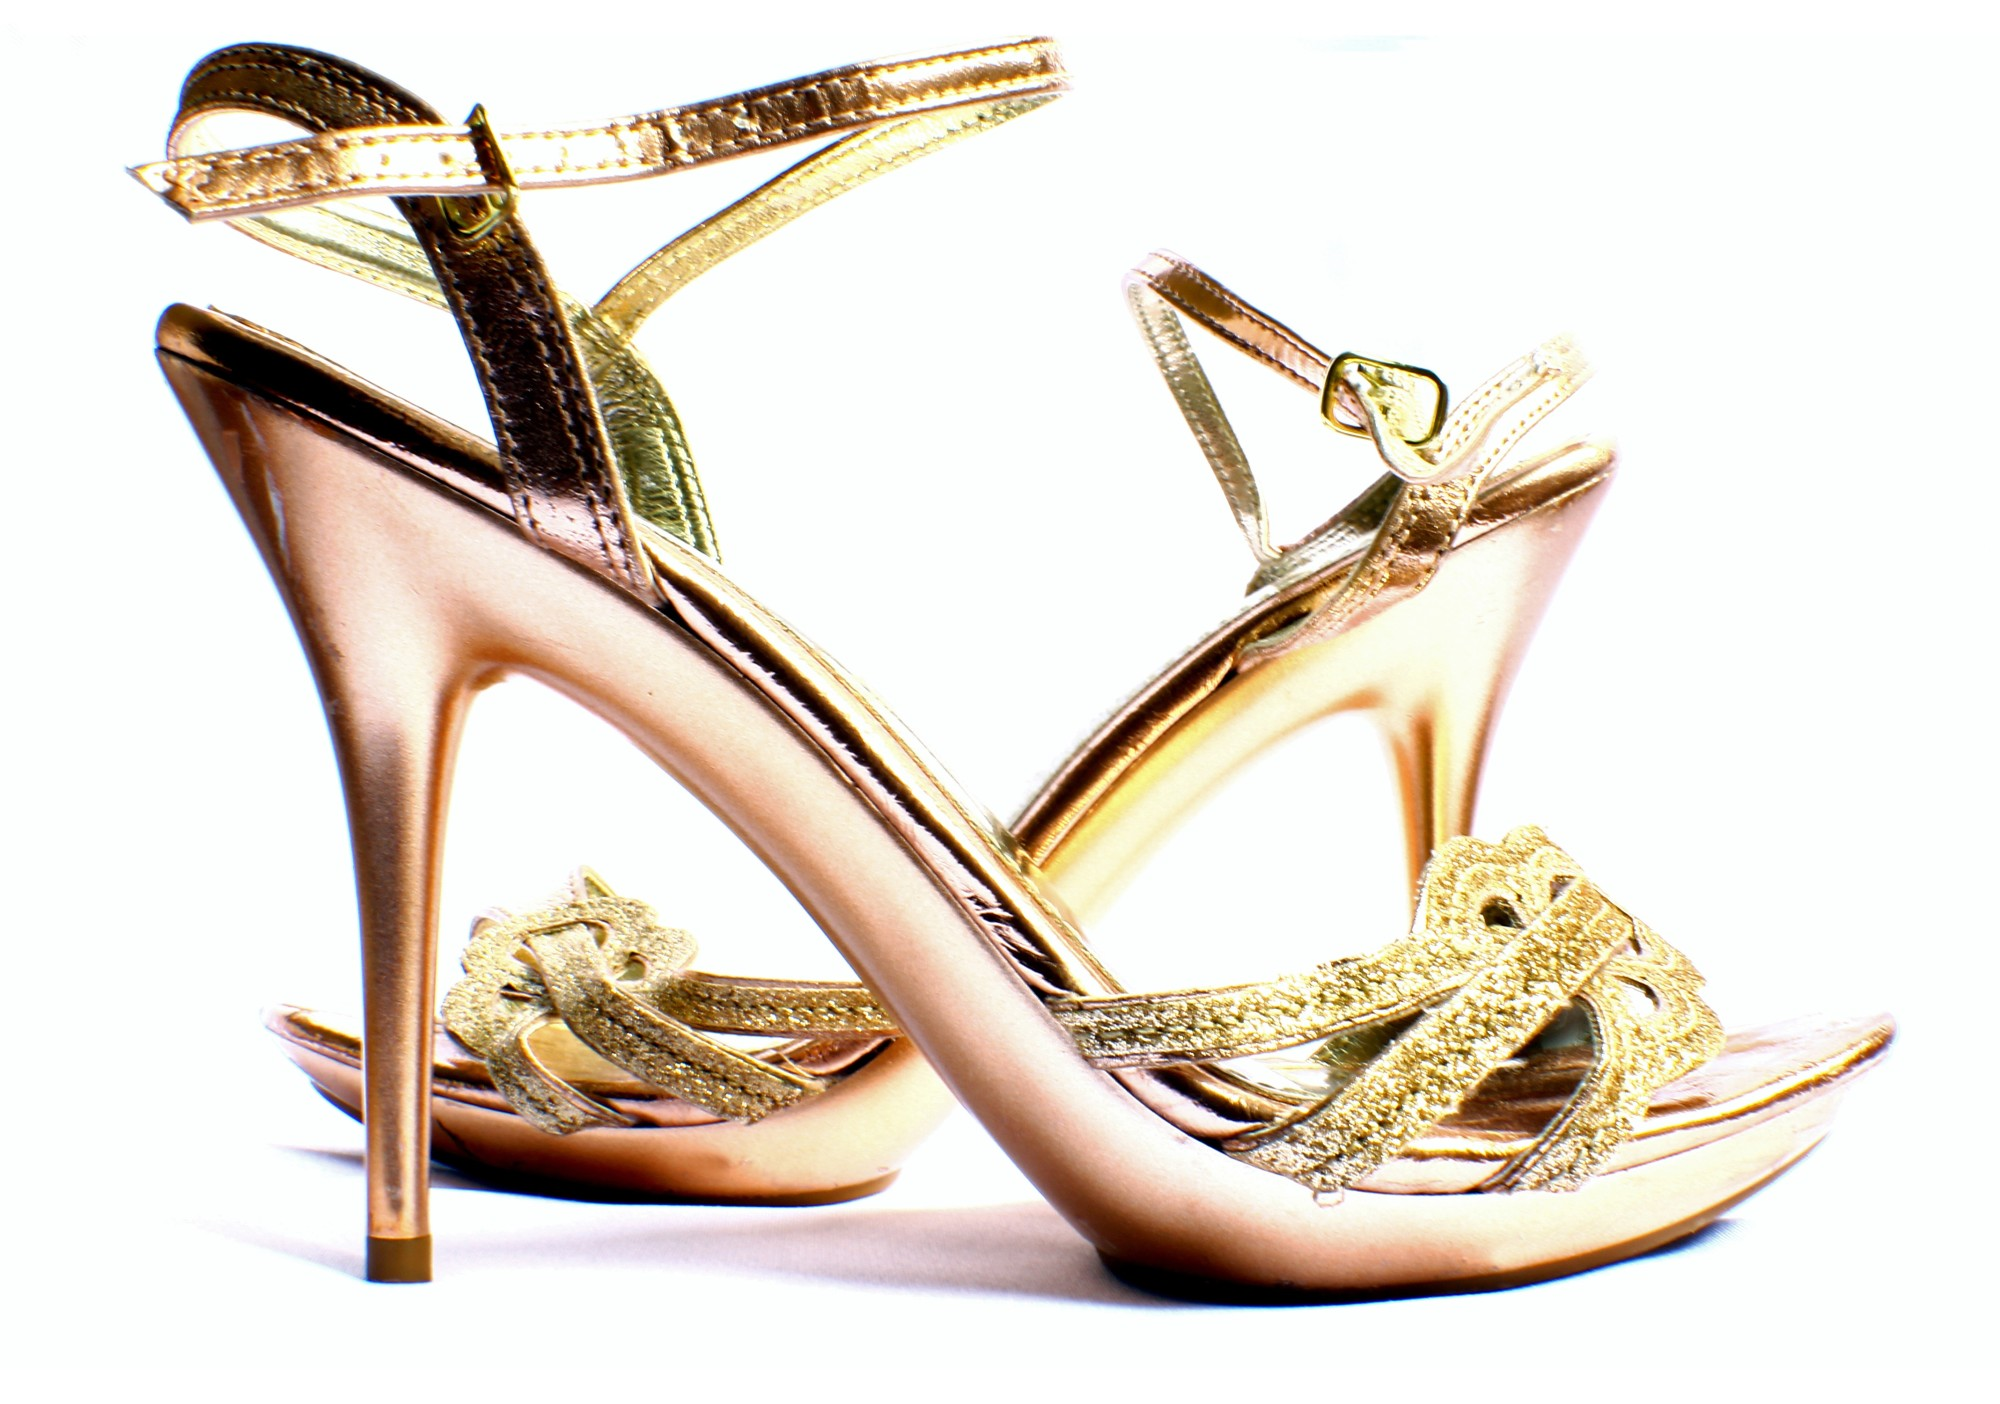 5 Most Expensive Shoes in the World Right Now